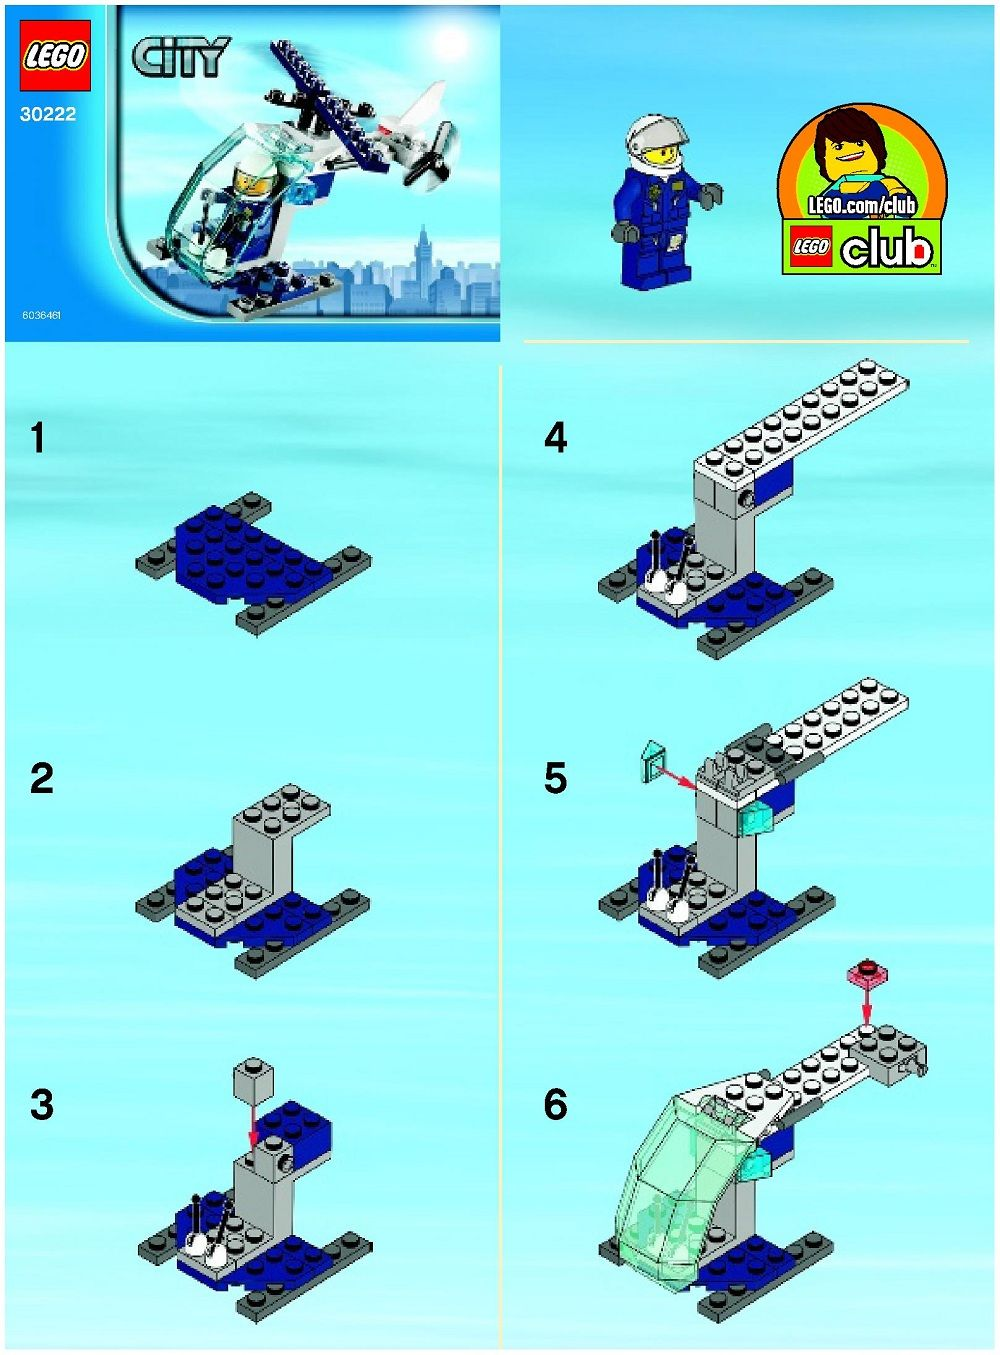 Missing Instructions Lego Instructions From 2013 For The Boys